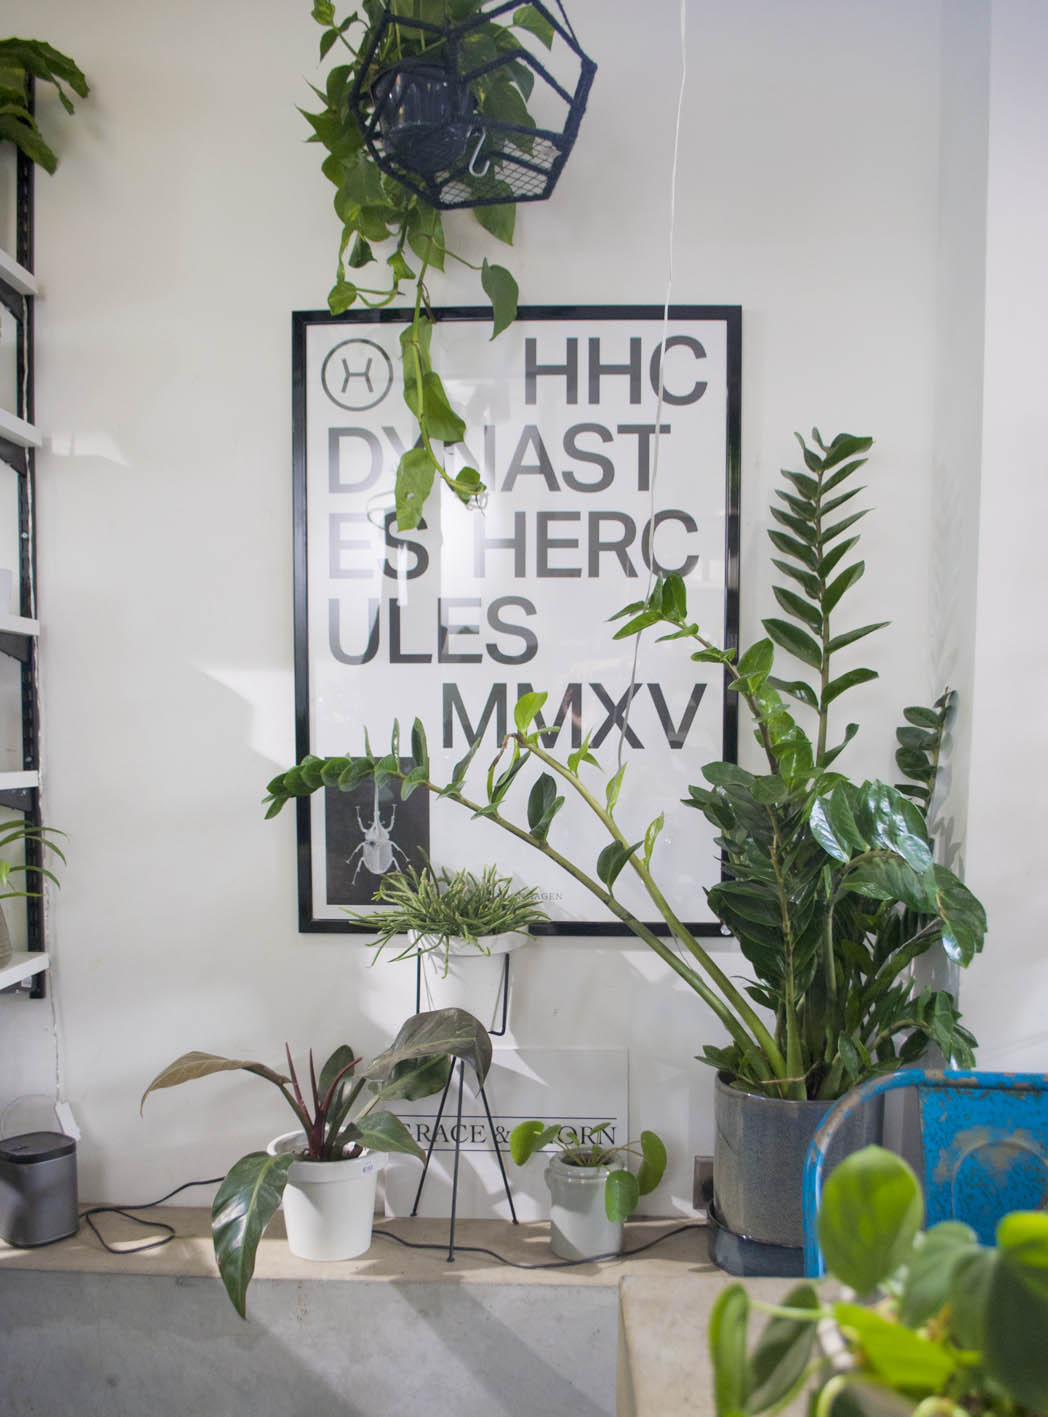 Get some green in your space - just some simple houseplants can be striking